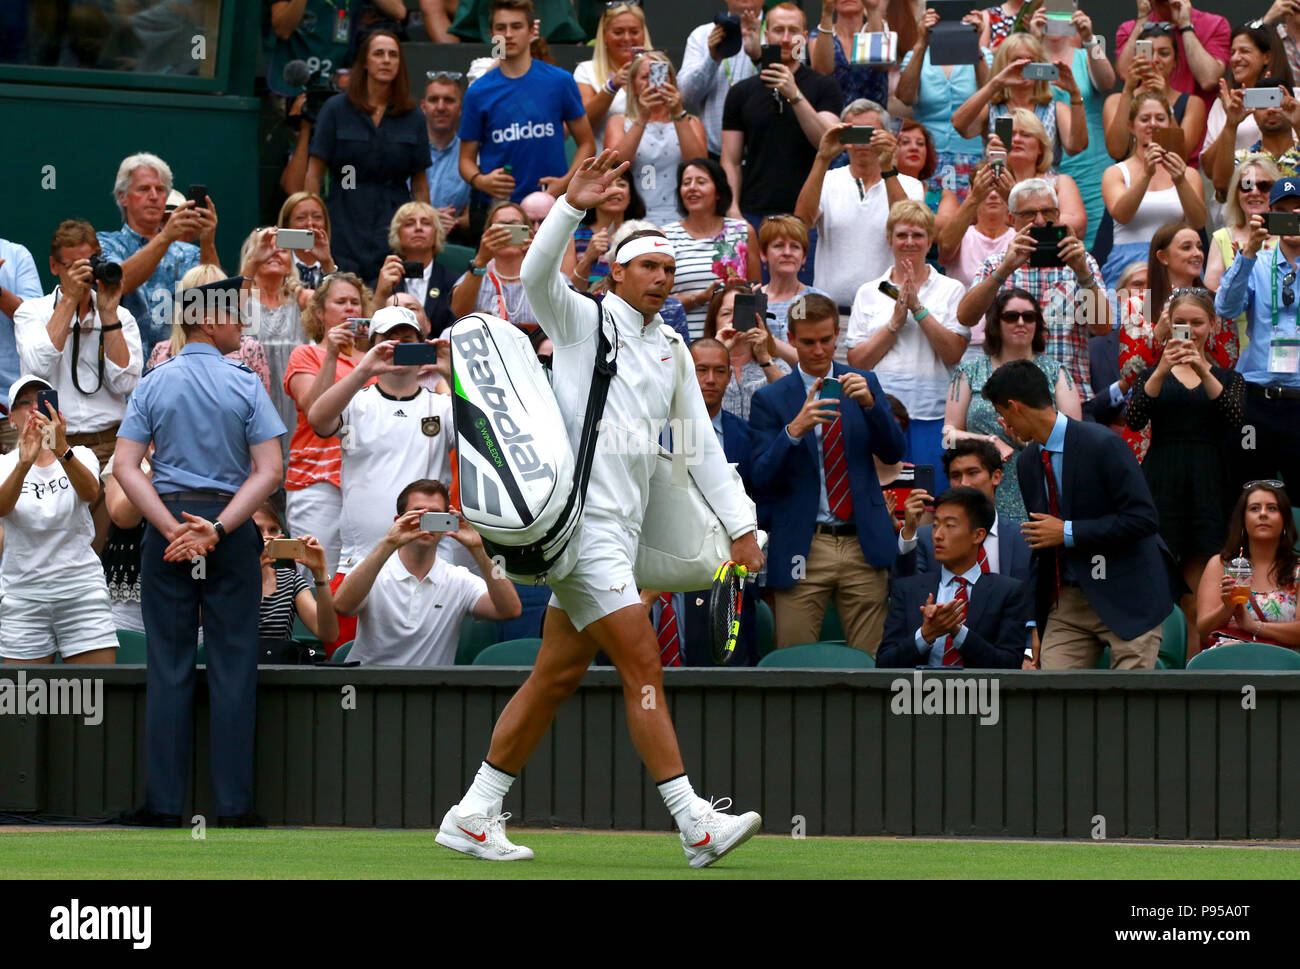 London, UK. 14th July 2018. Rafael Nadal returns to court to continue his epic battle with Novak Djokovic with finished at 11.00pm last night. Day, Day 12 Wimbledon Tennis The Championships, Wimbledon, London, on July 14, 2018. Credit: Paul Marriott/Alamy Live News - Stock Image